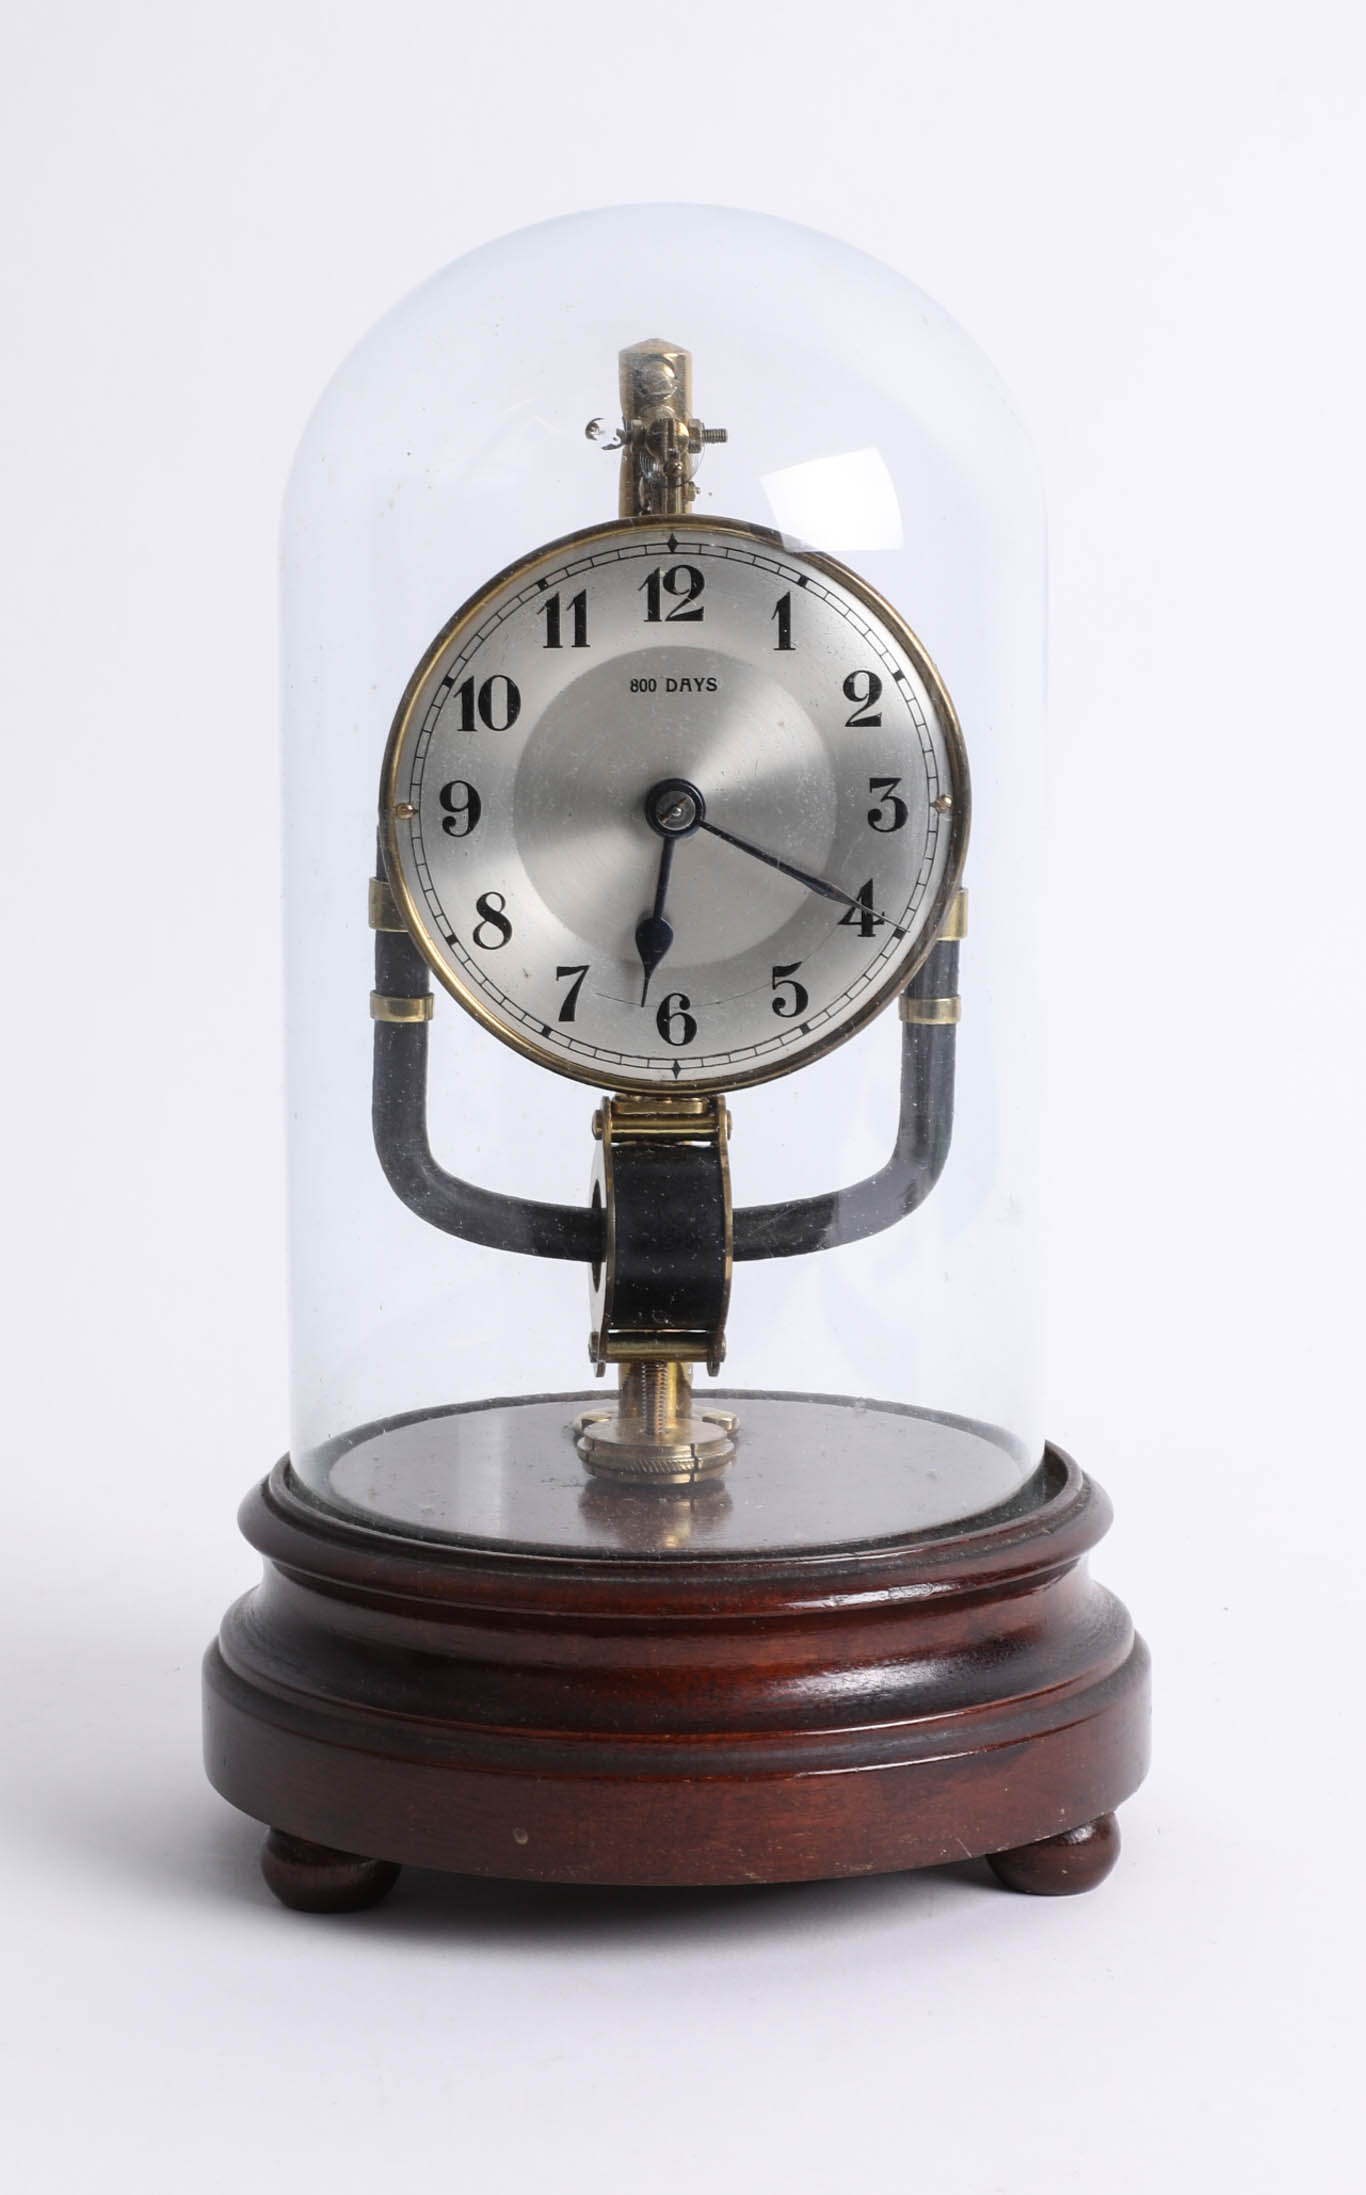 An 800 day clock (electric) under dome, height 28cm.